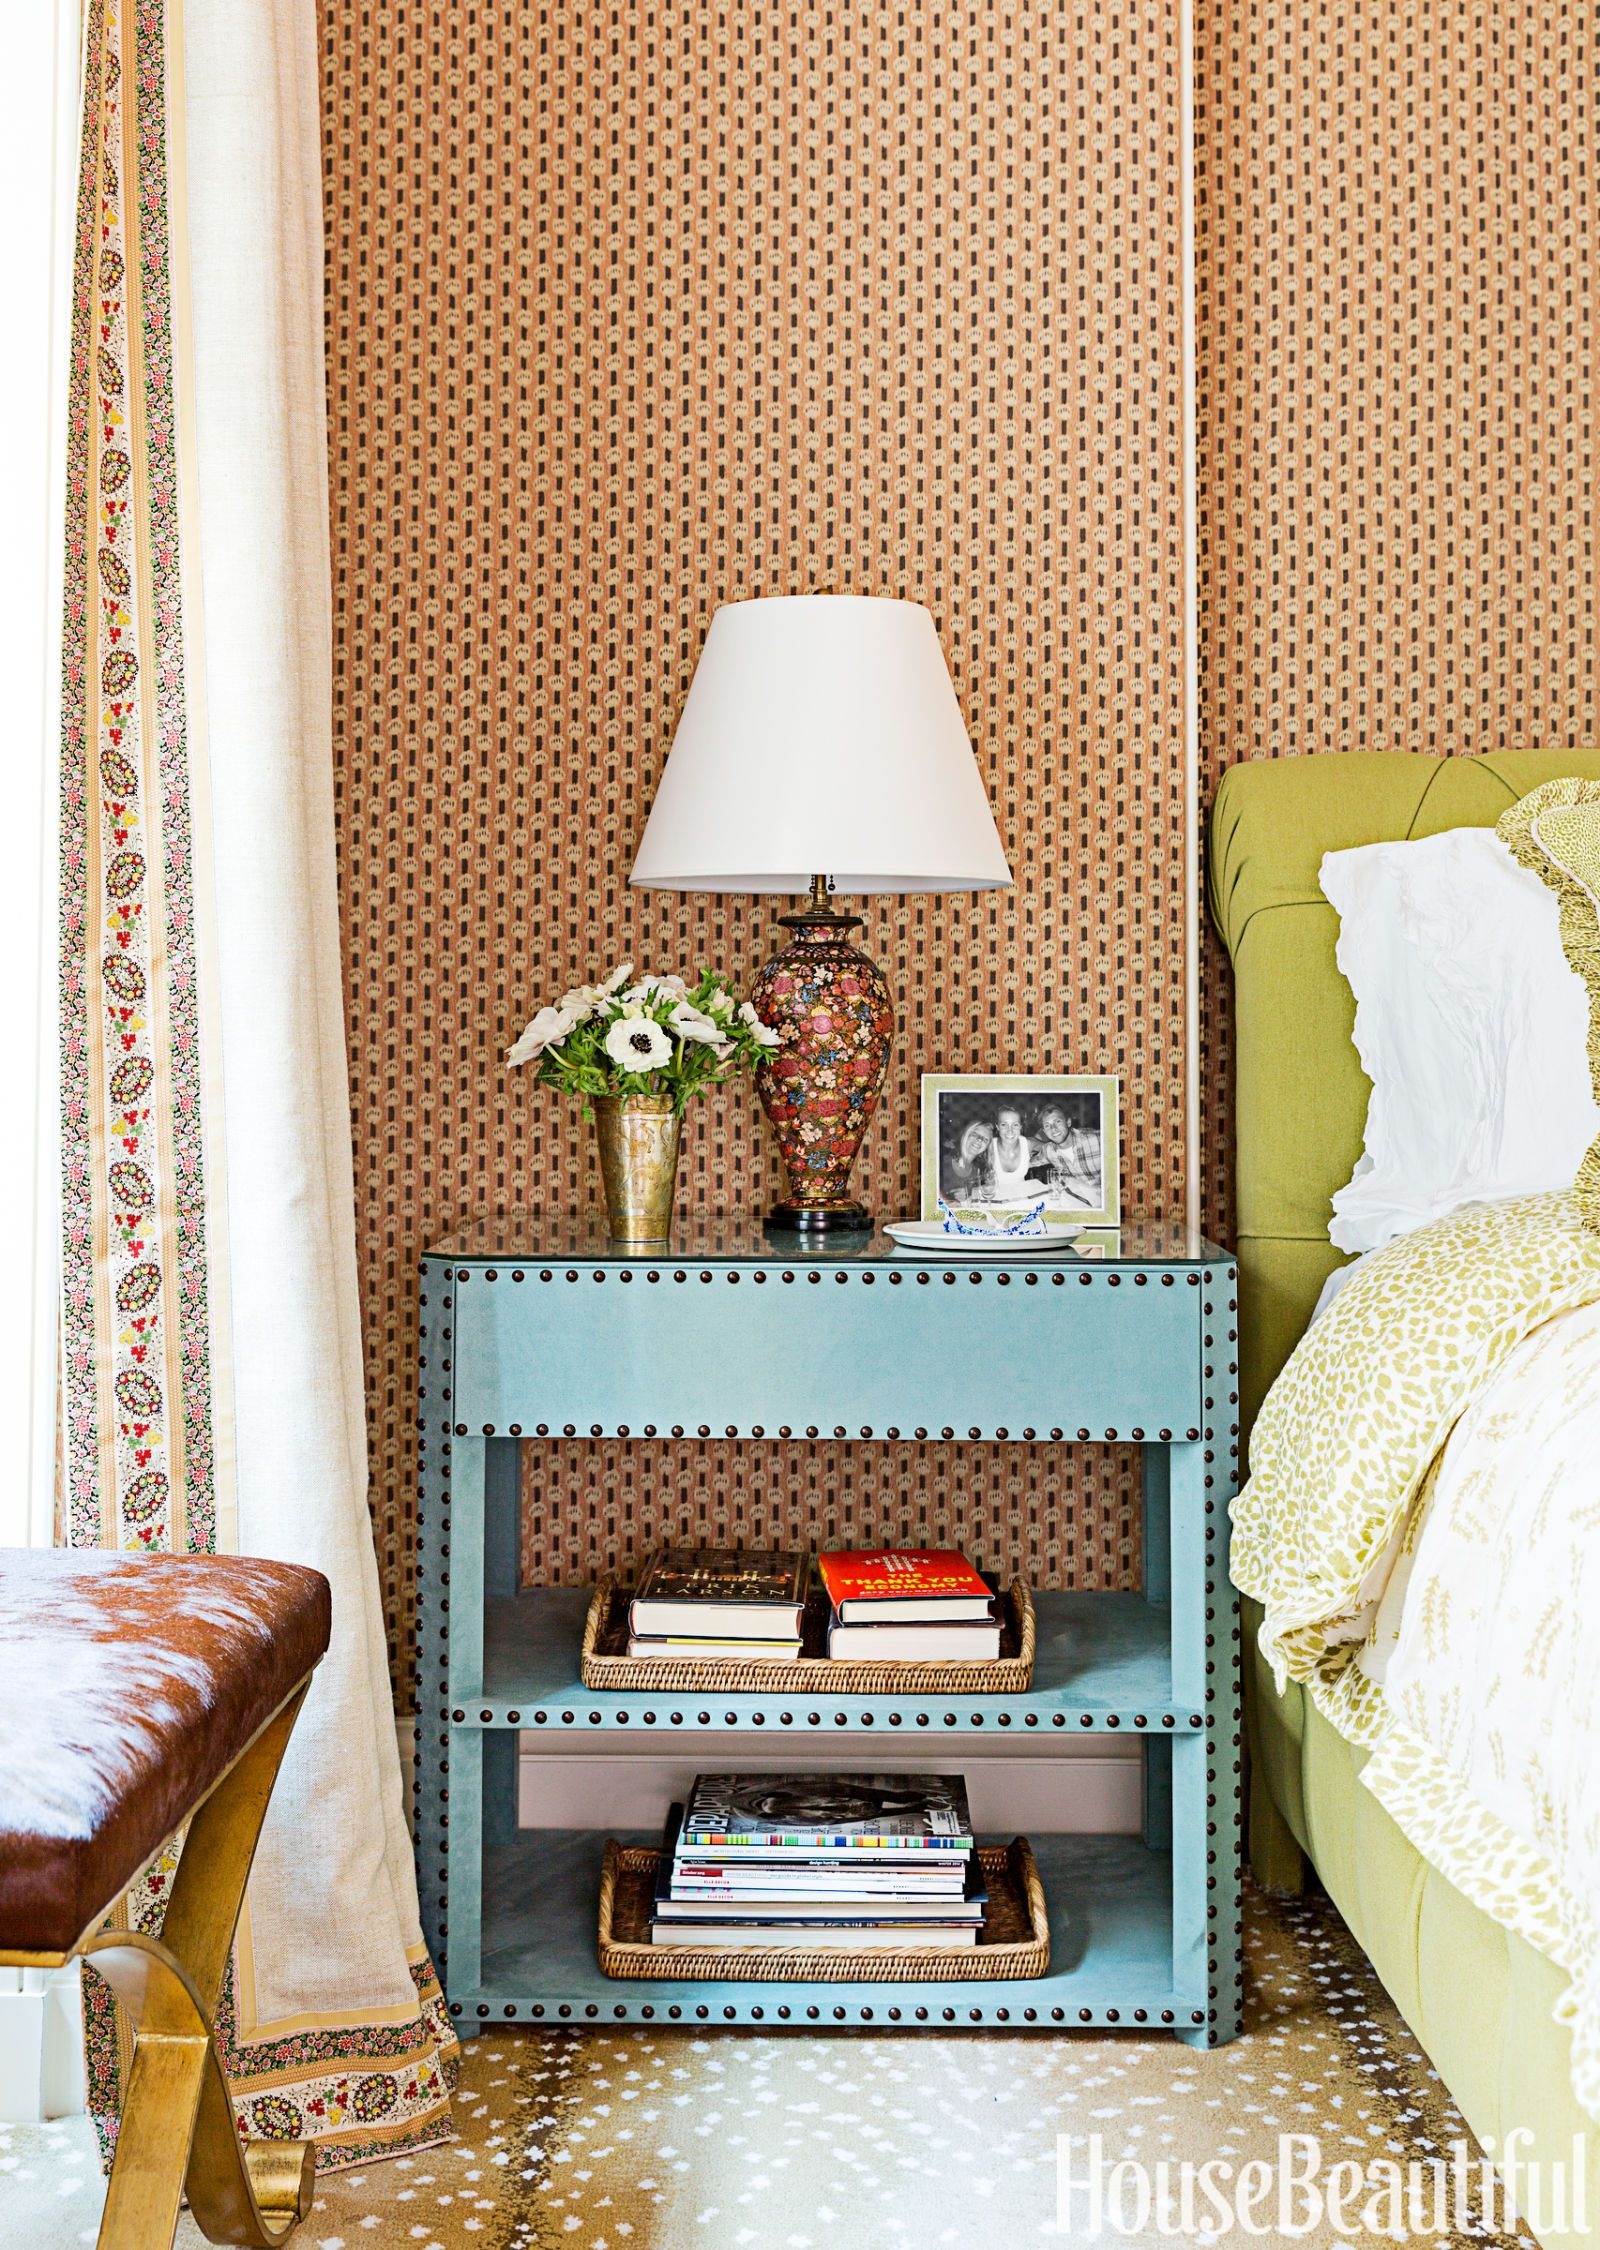 bedside table tips - how to choose a nightstand How Tall Should a Bedside Table Be